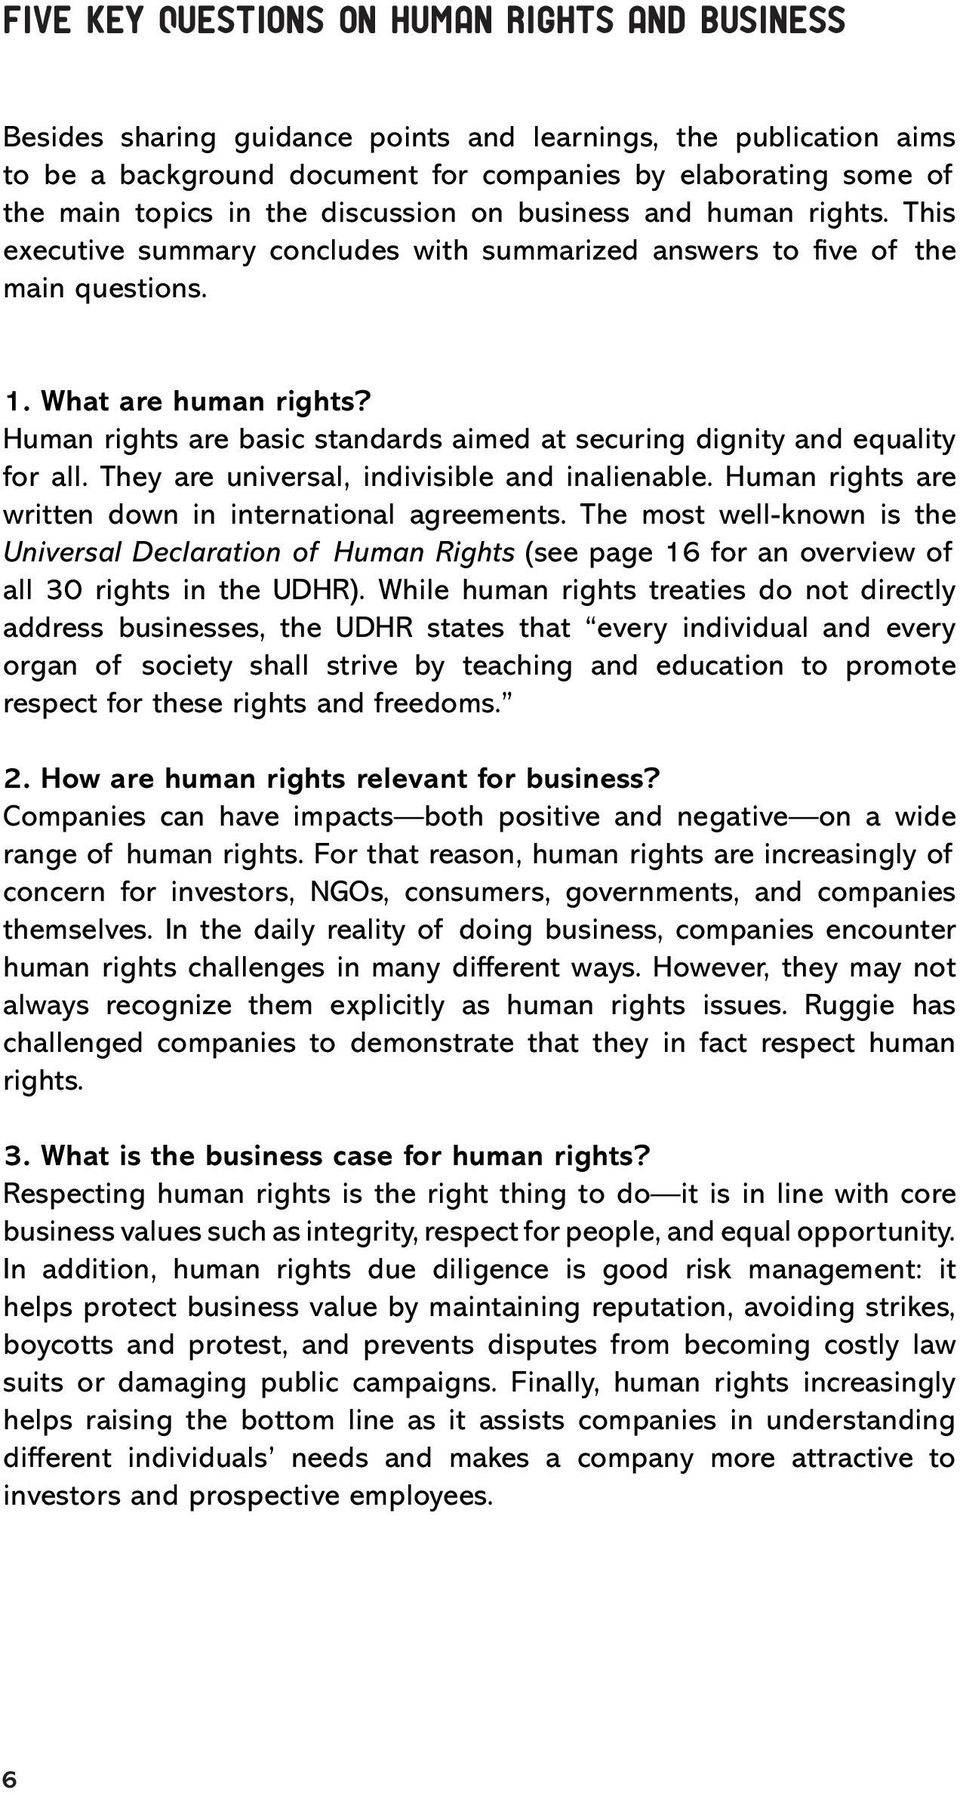 Human rights are basic standards aimed at securing dignity and equality for all. They are universal, indivisible and inalienable. Human rights are written down in international agreements.